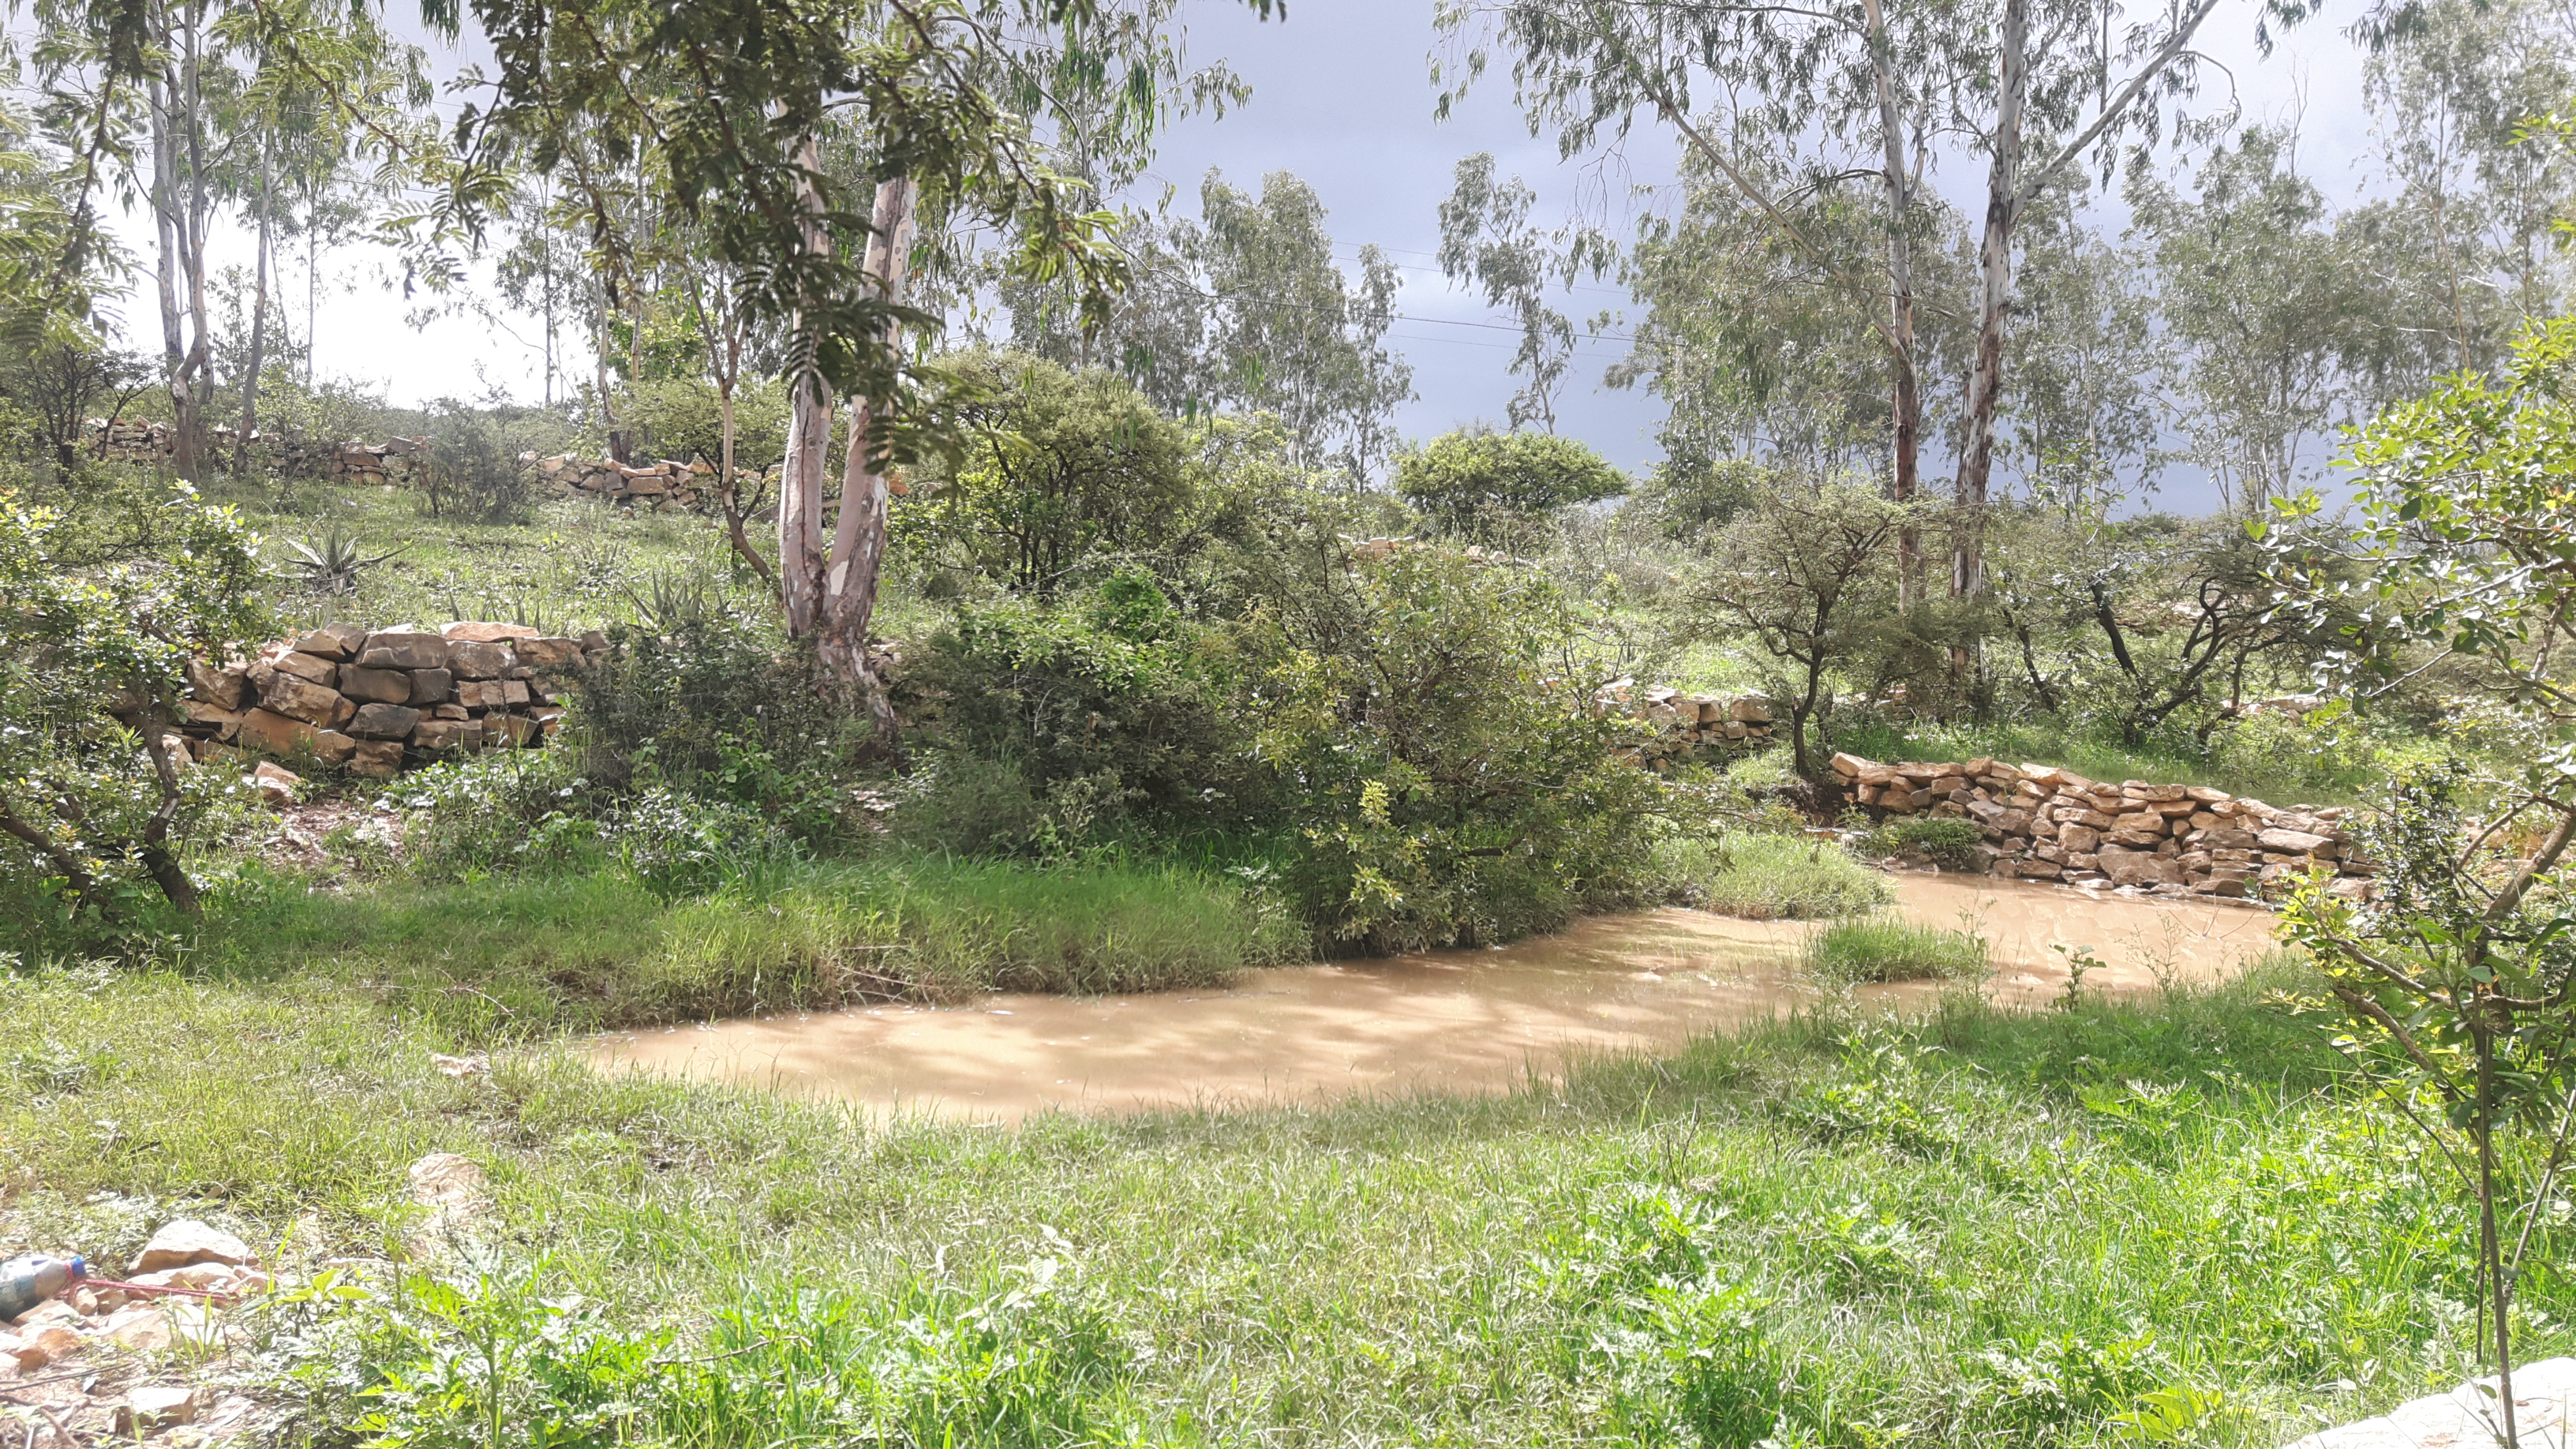 <p>State-run and private businesses throughout Ethiopia are restoring land and creating jobs. Photo by Meseret Shiferaw/WRI</p>